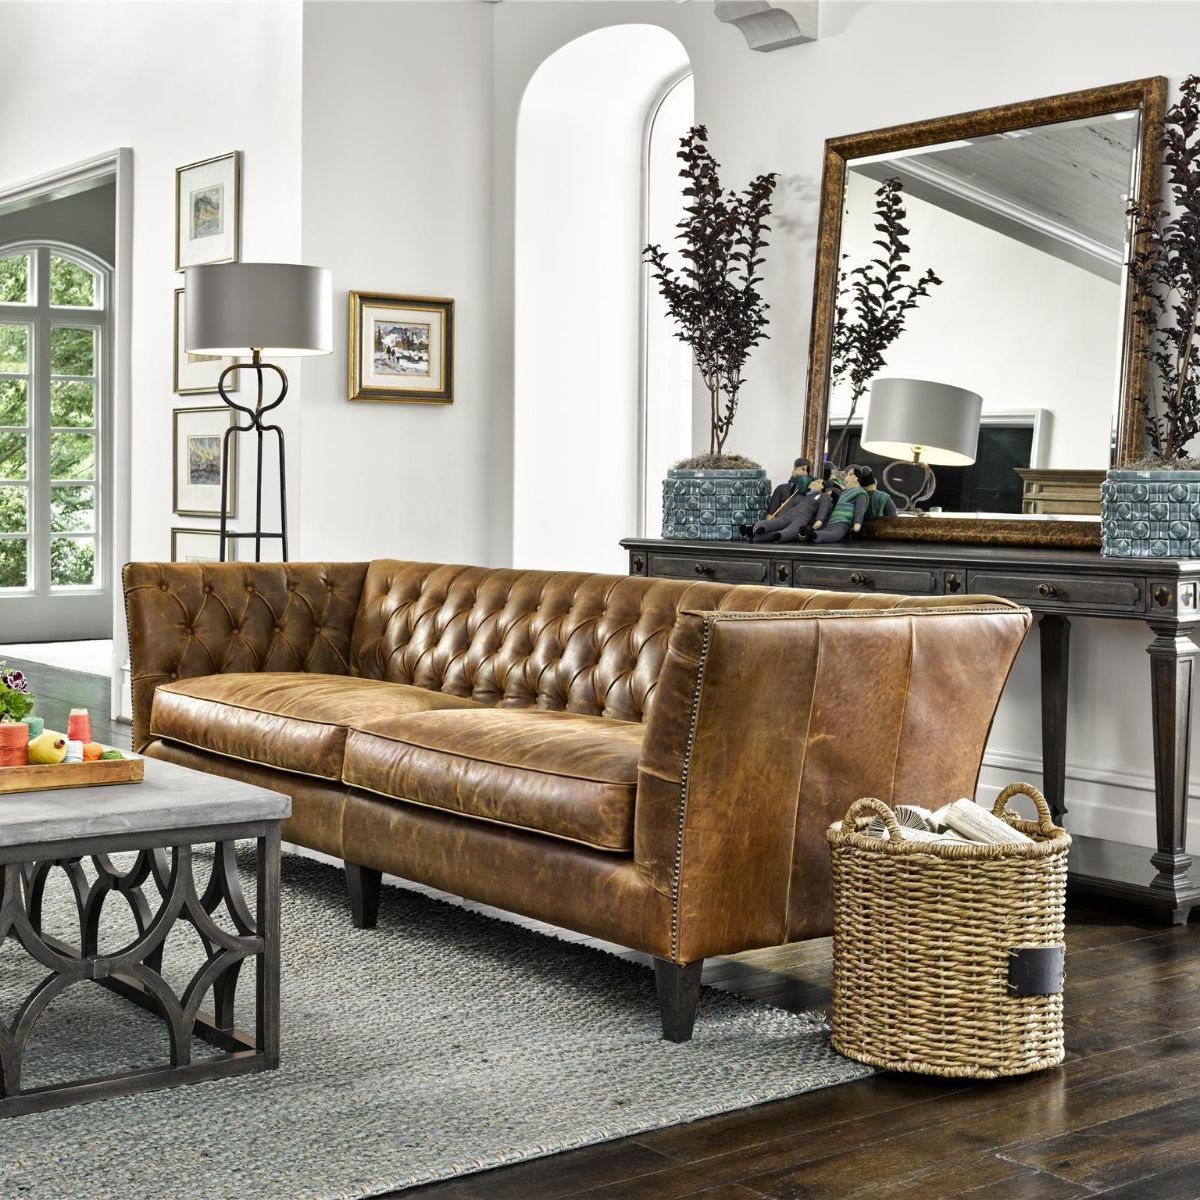 Duncan Chestnut Tufted Leather Sofa 98 Leather Couches Living Room Living Room Leather Most Comfortable Couch